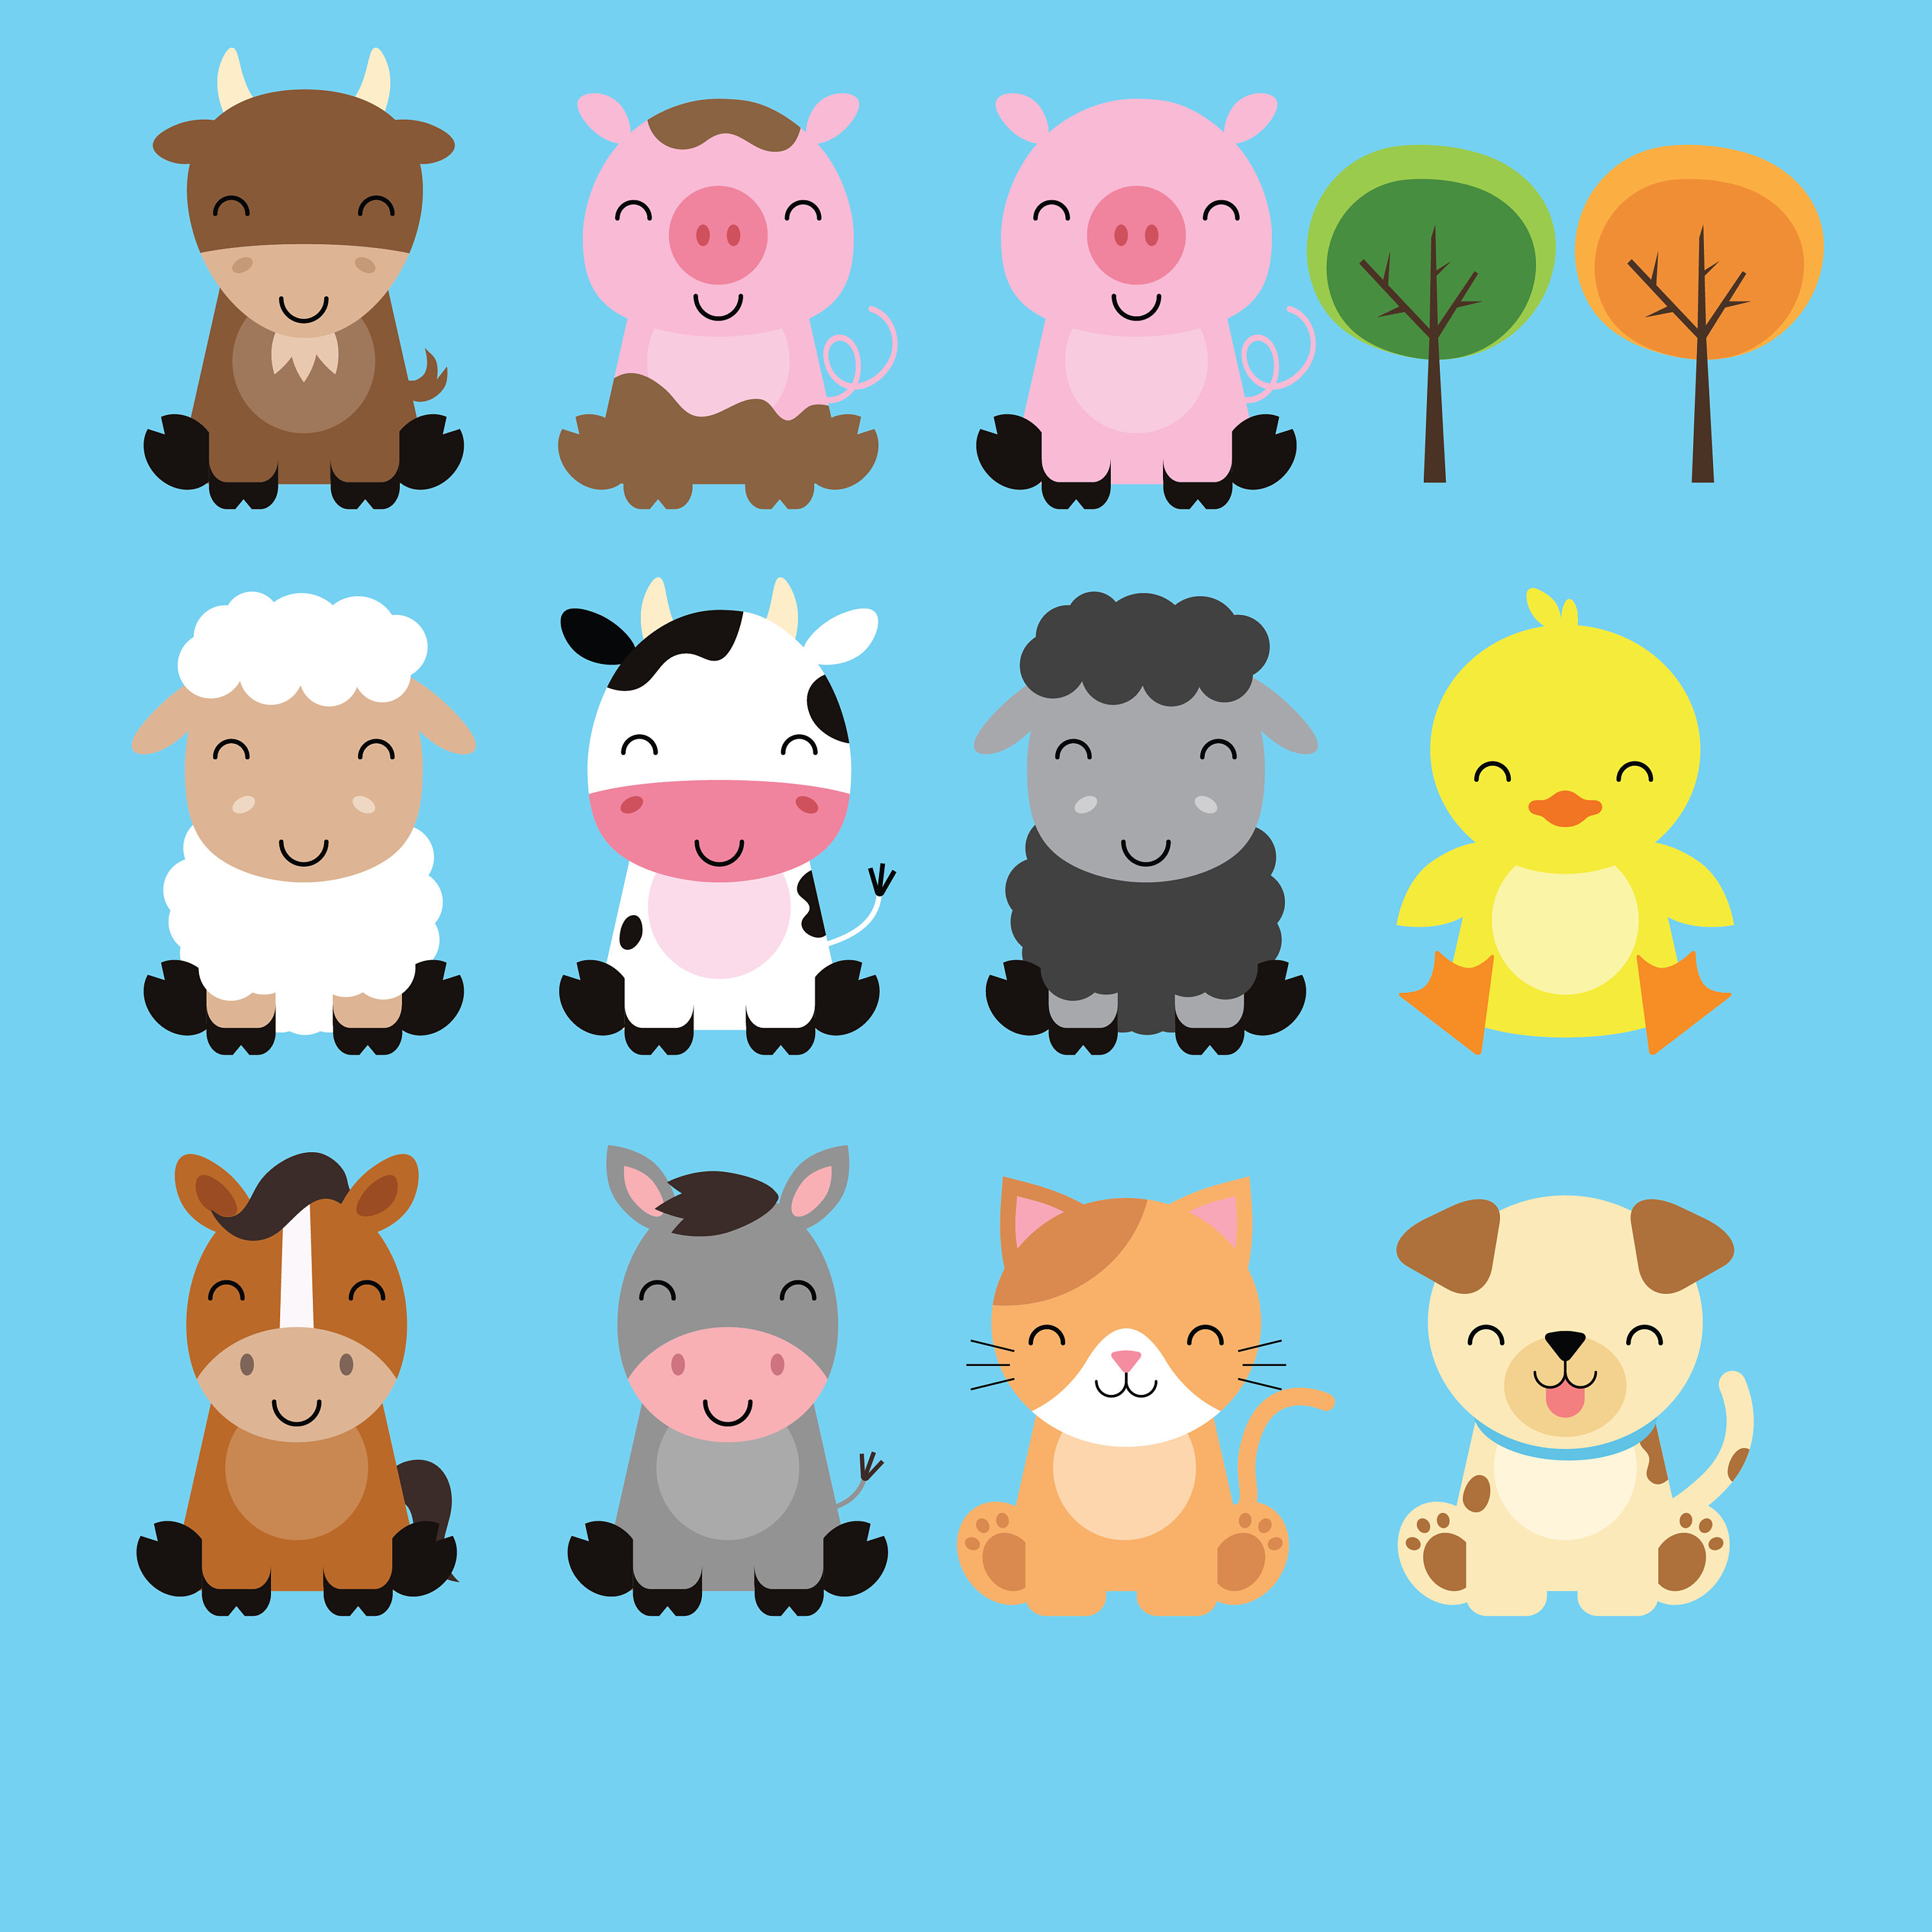 barn animals clipart at getdrawings com free for personal use barn rh getdrawings com barnyard animals clipart free barnwood clipart